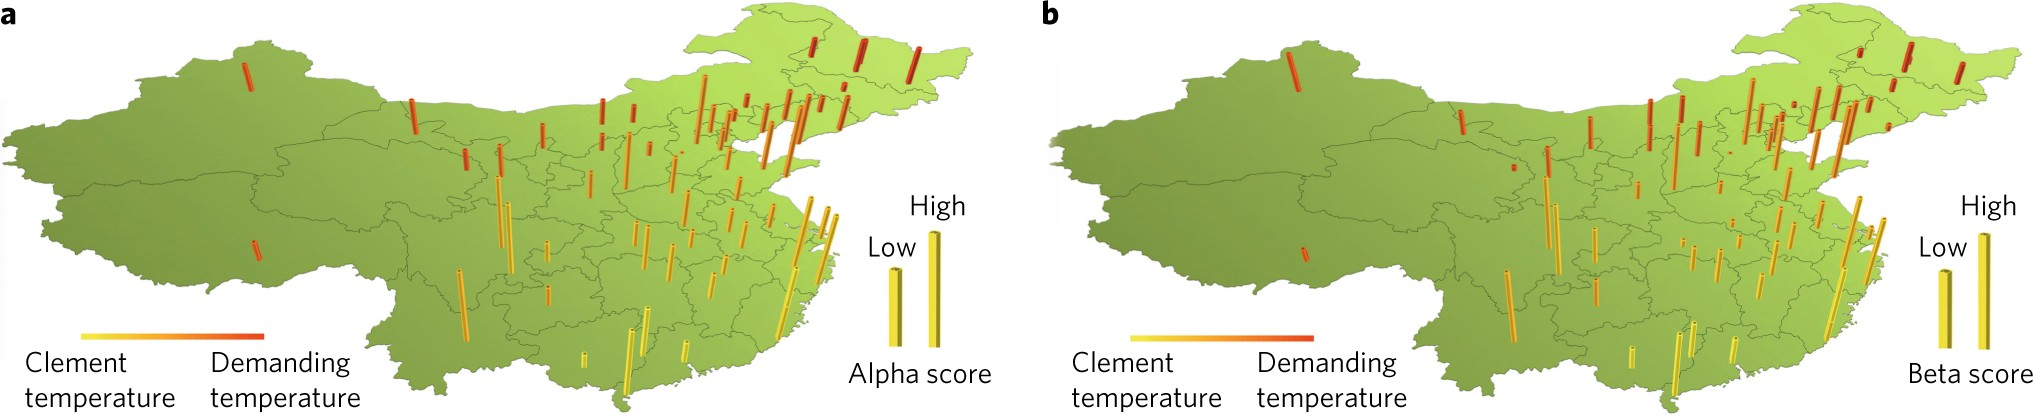 Regional ambient temperature is associated with human